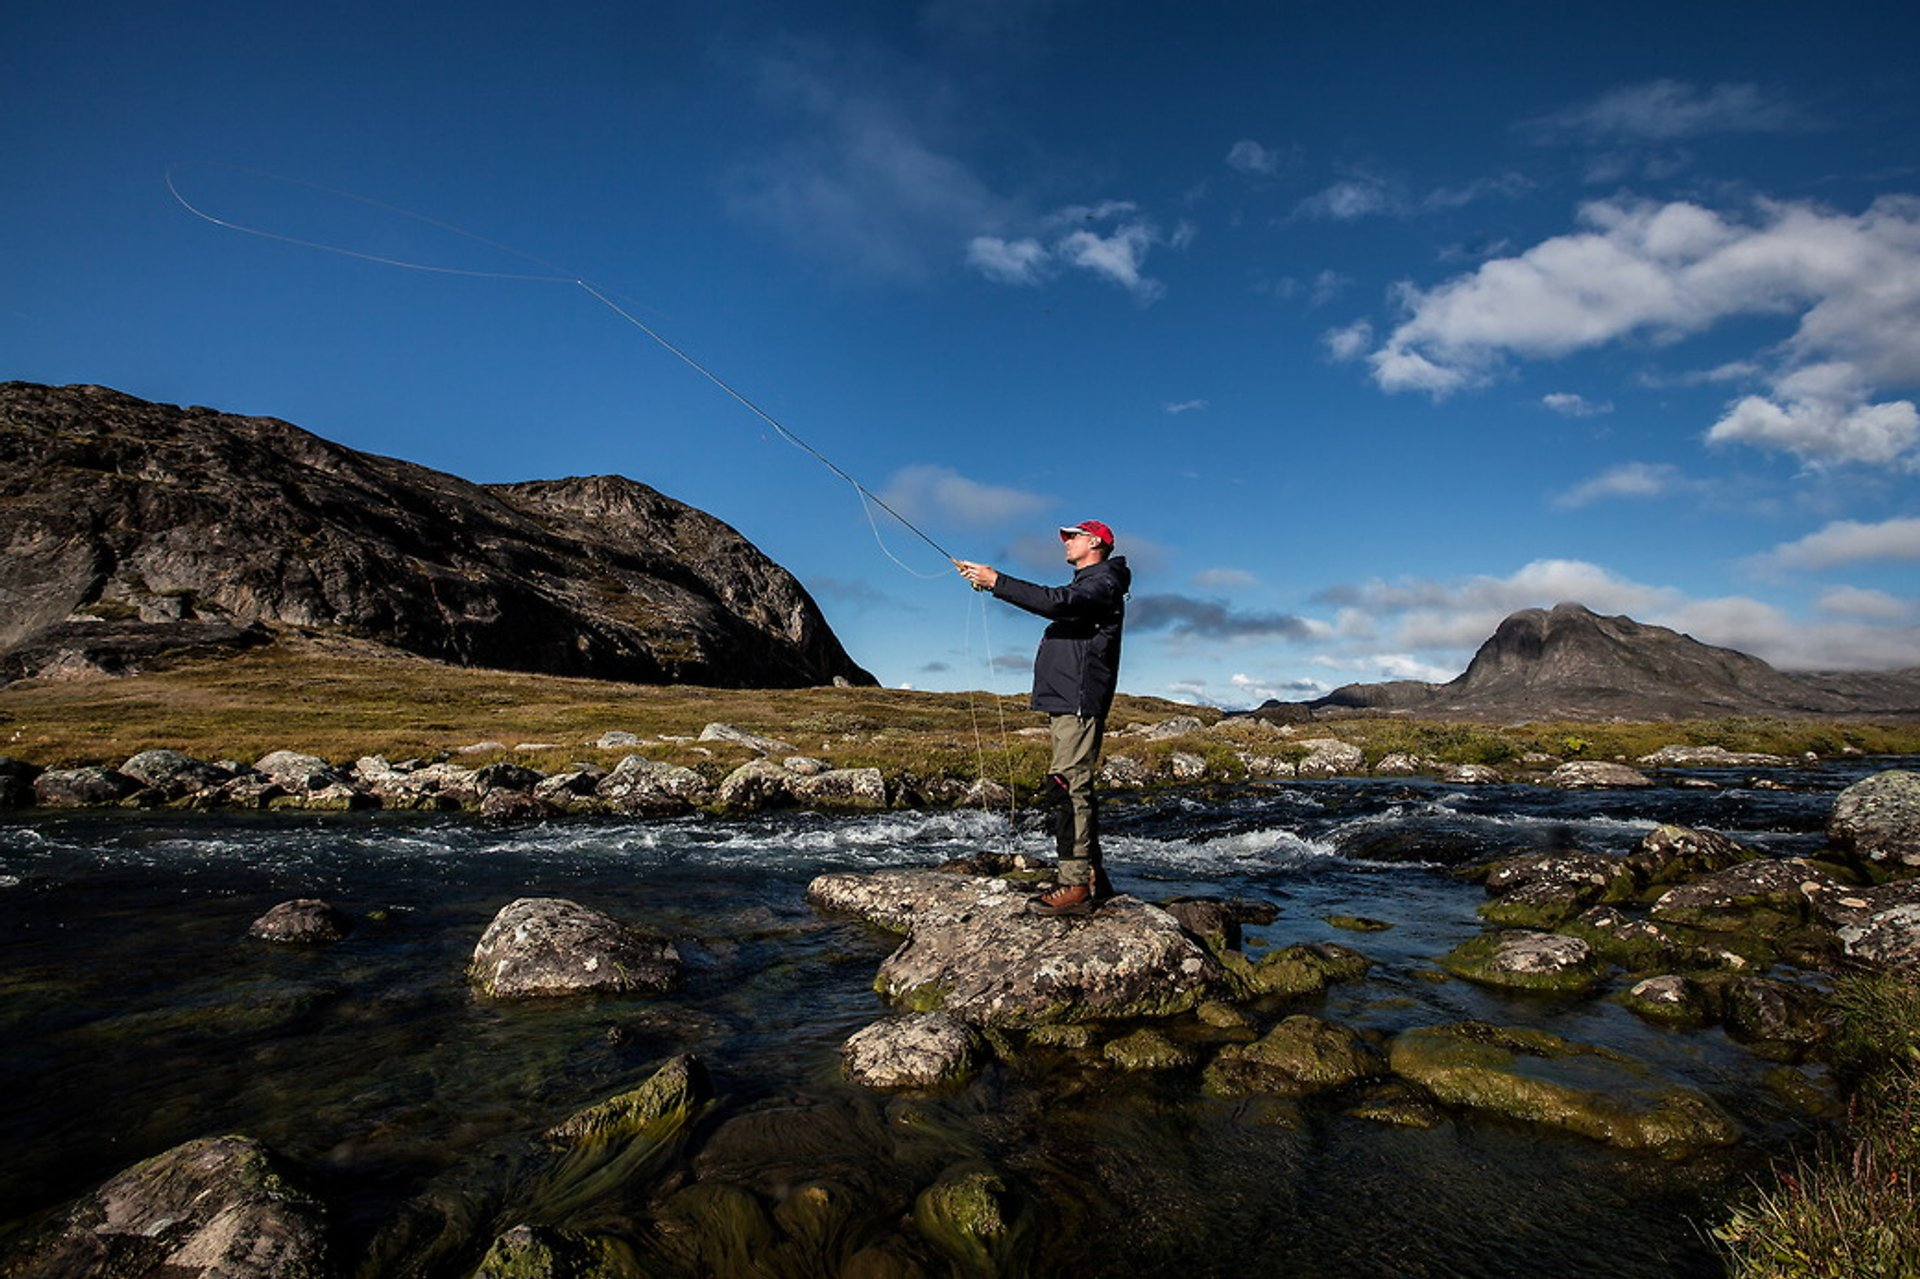 Fly fishing on the lower Erfalik river 2020